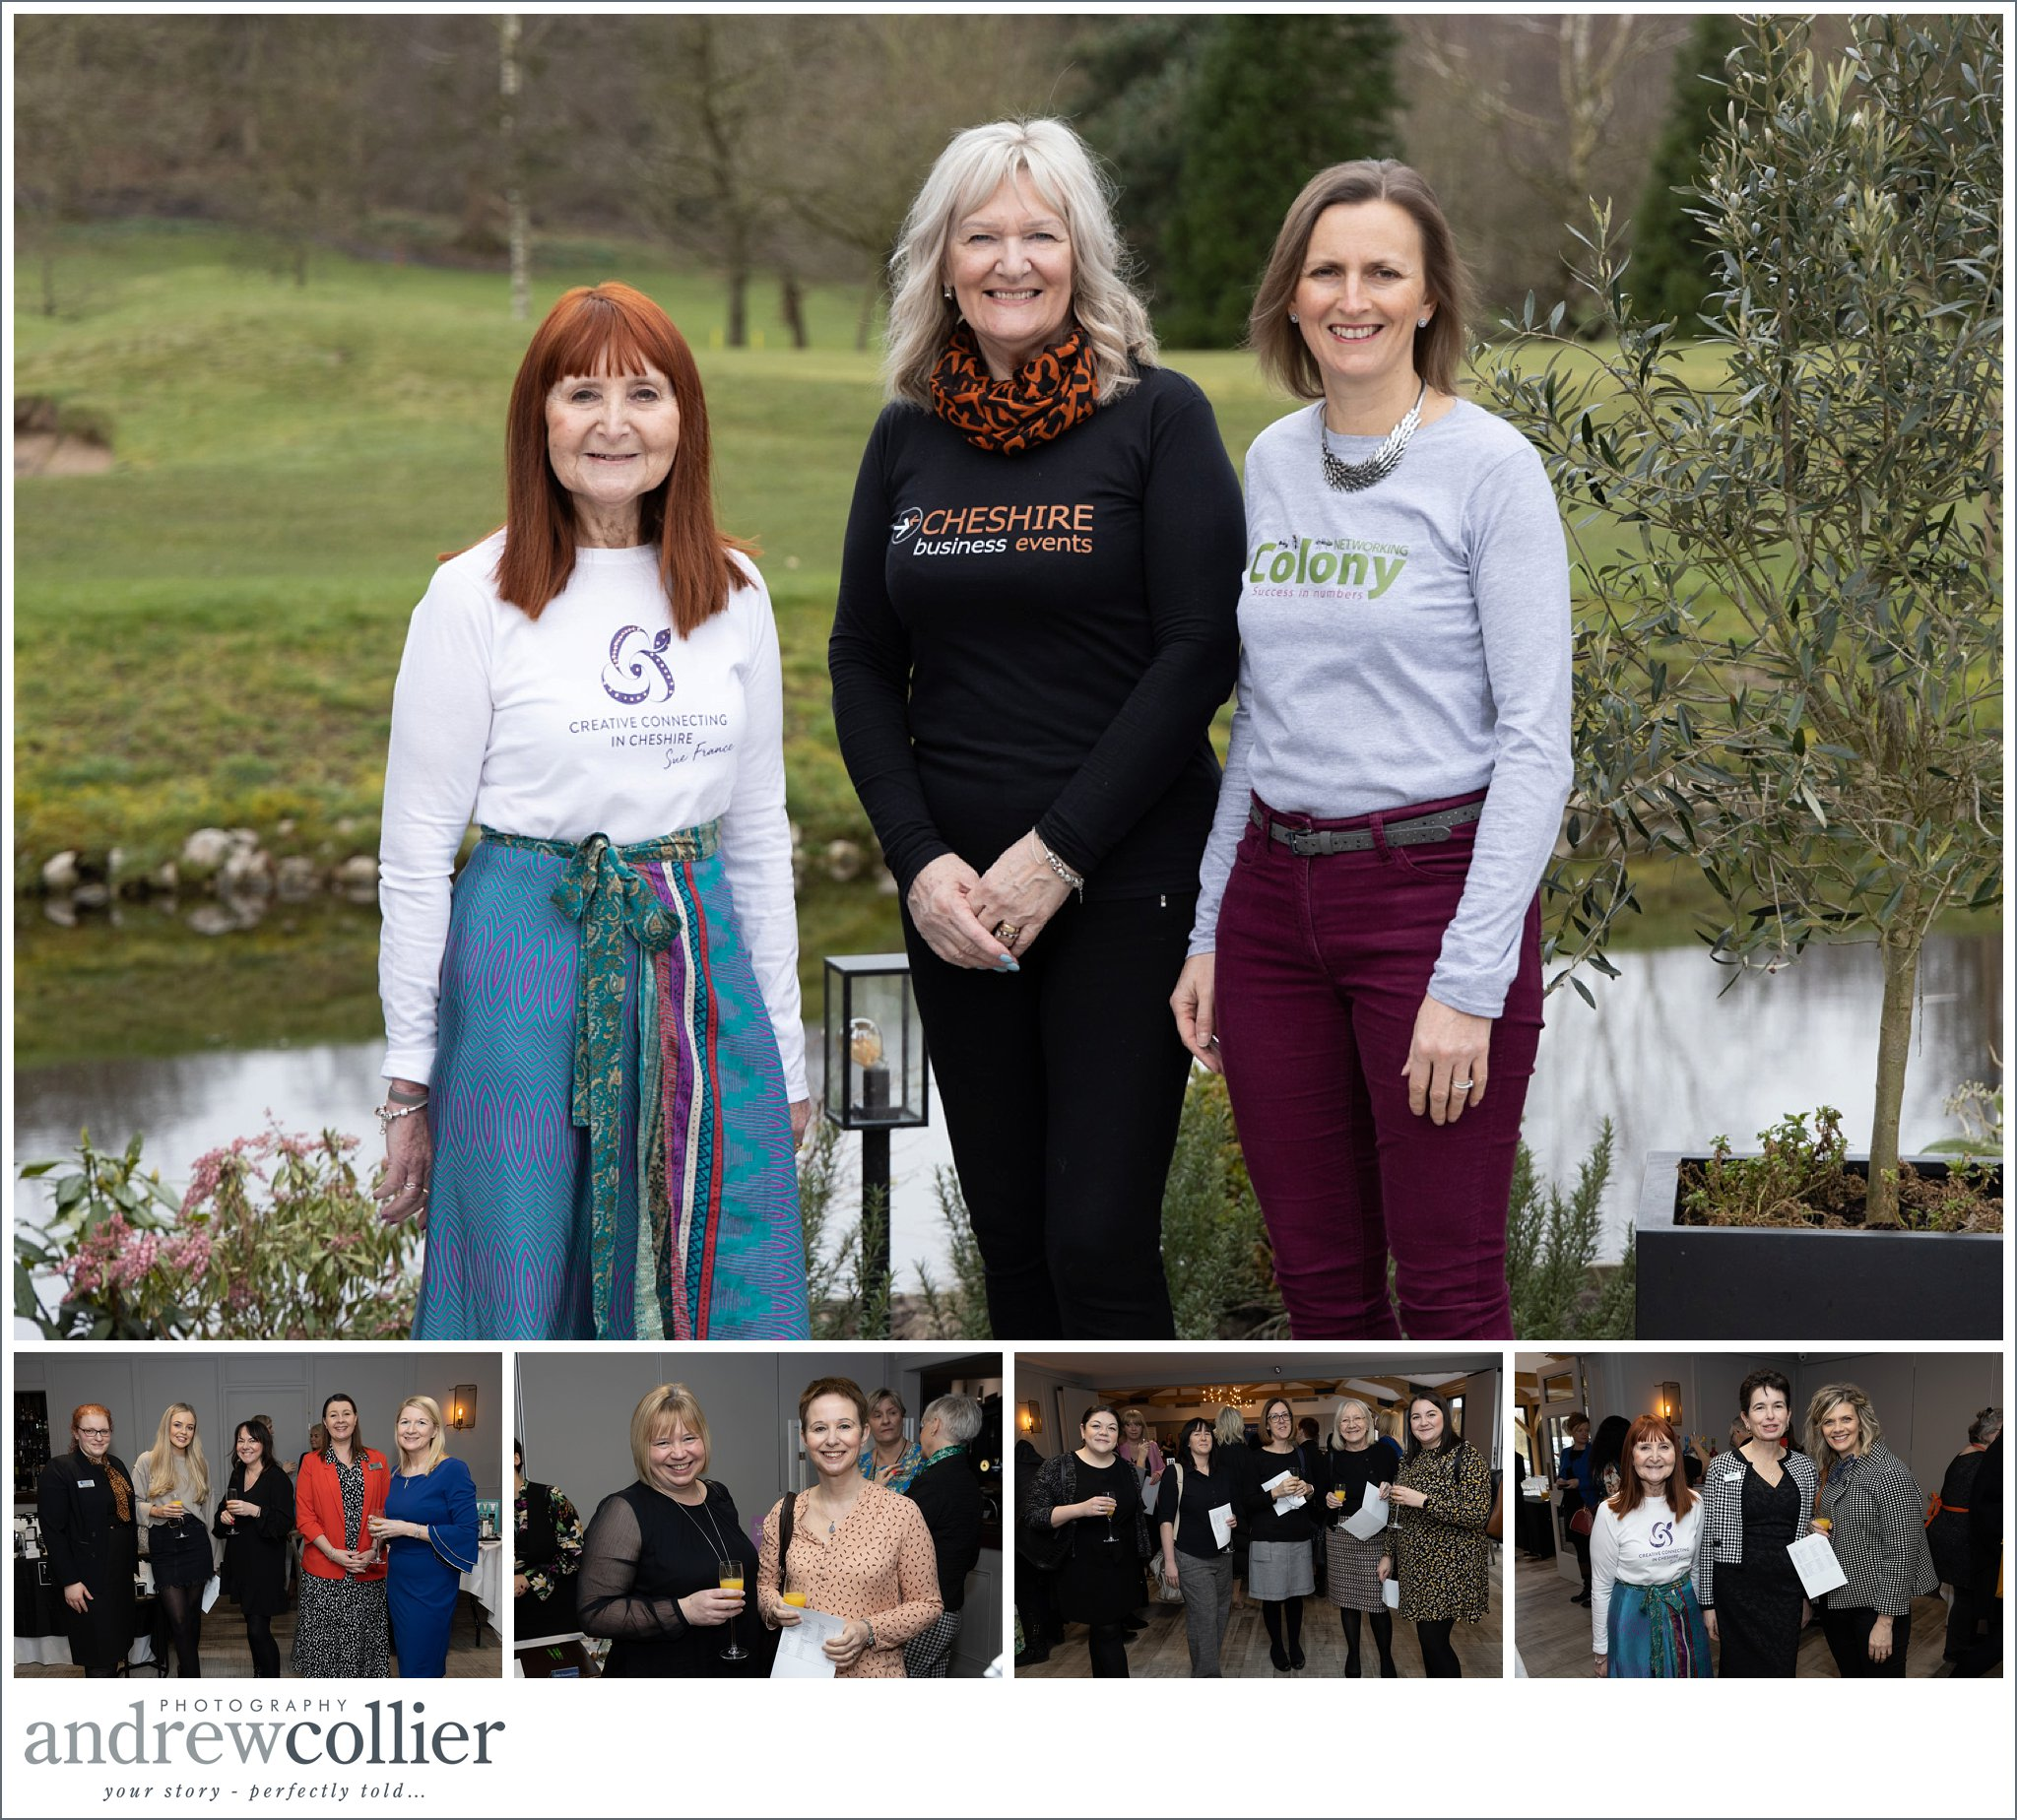 International Women's Day photography in Northwich